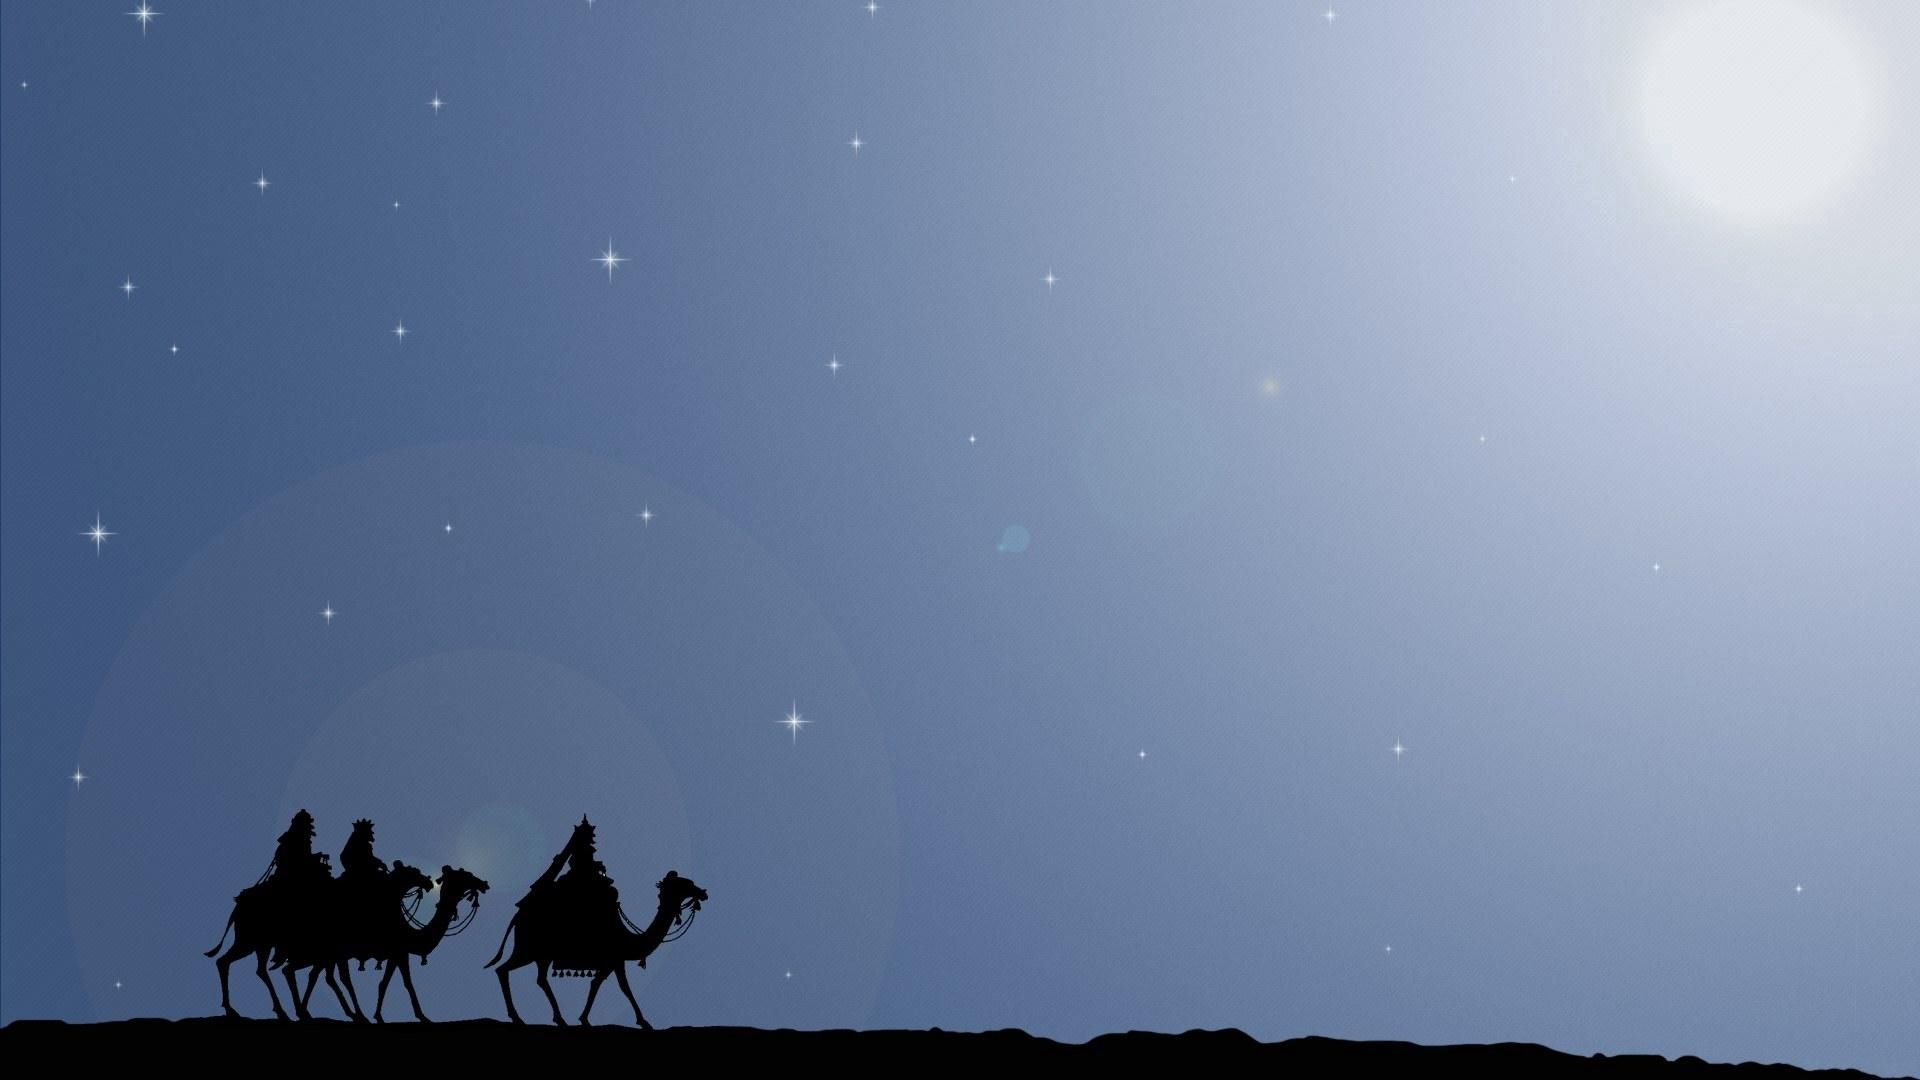 51858 download wallpaper Vector, Stroll, Sky, Riders, Camels screensavers and pictures for free